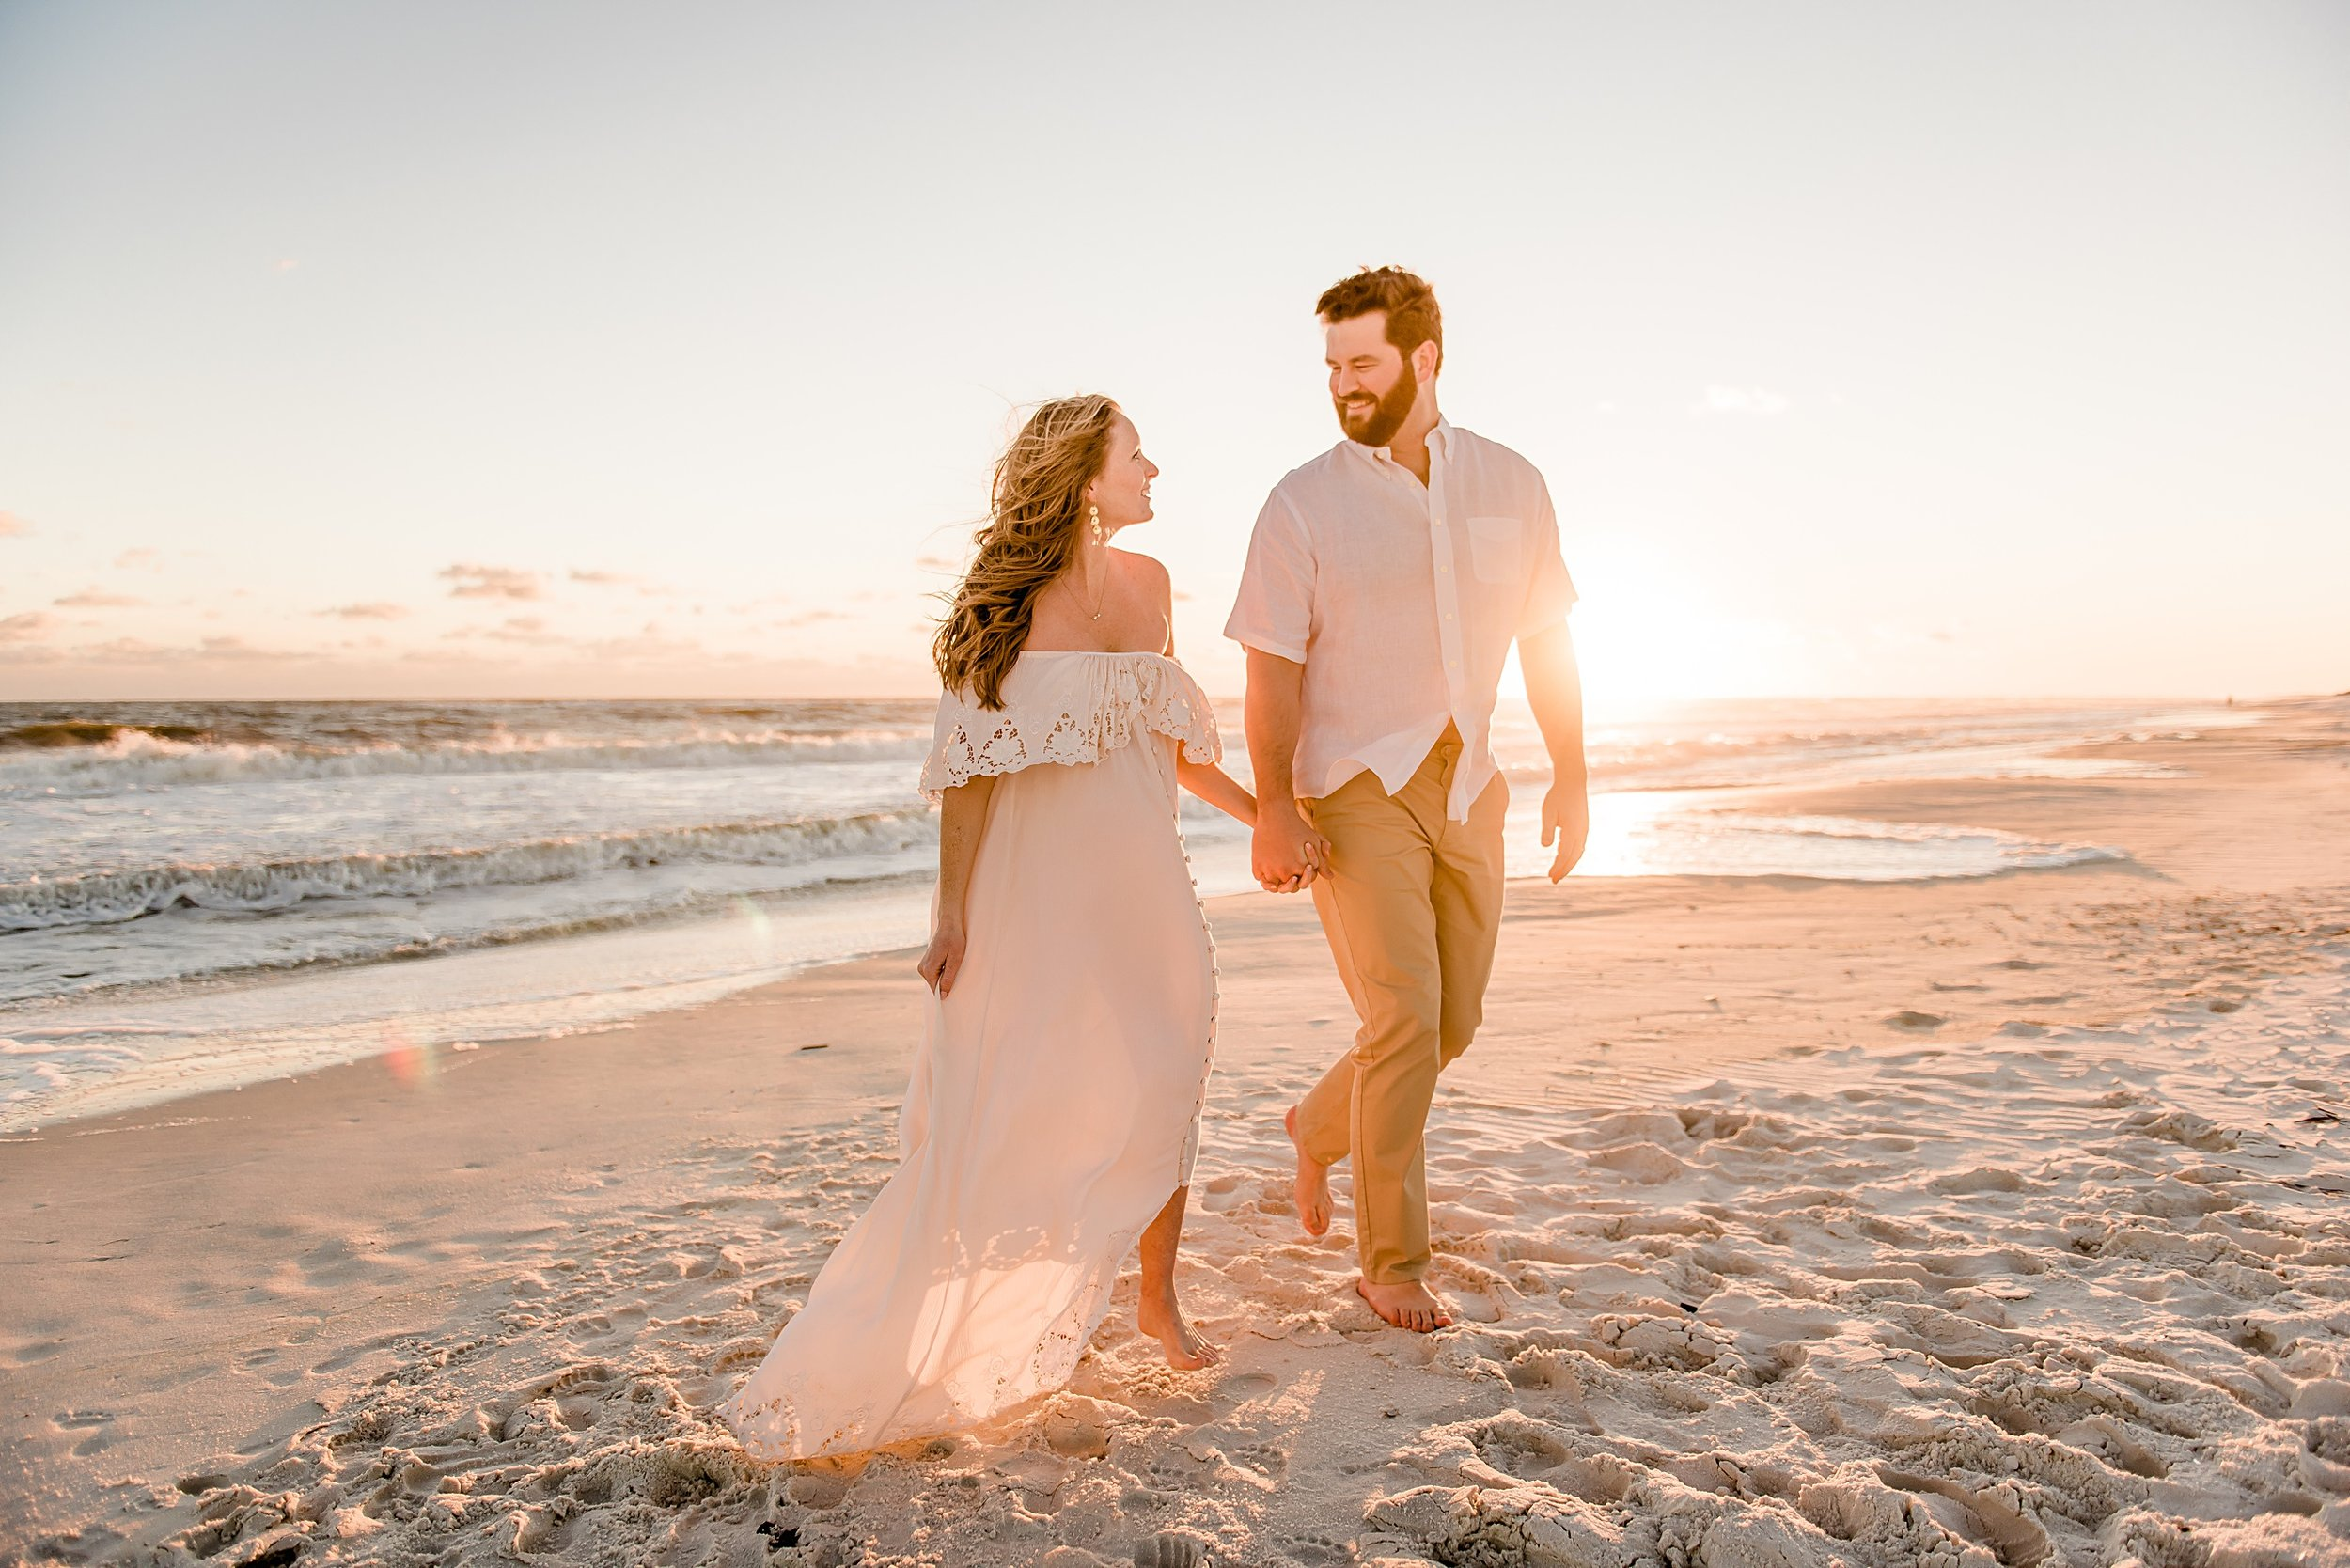 bestpensacolaweddingphotographer_1990.jpg